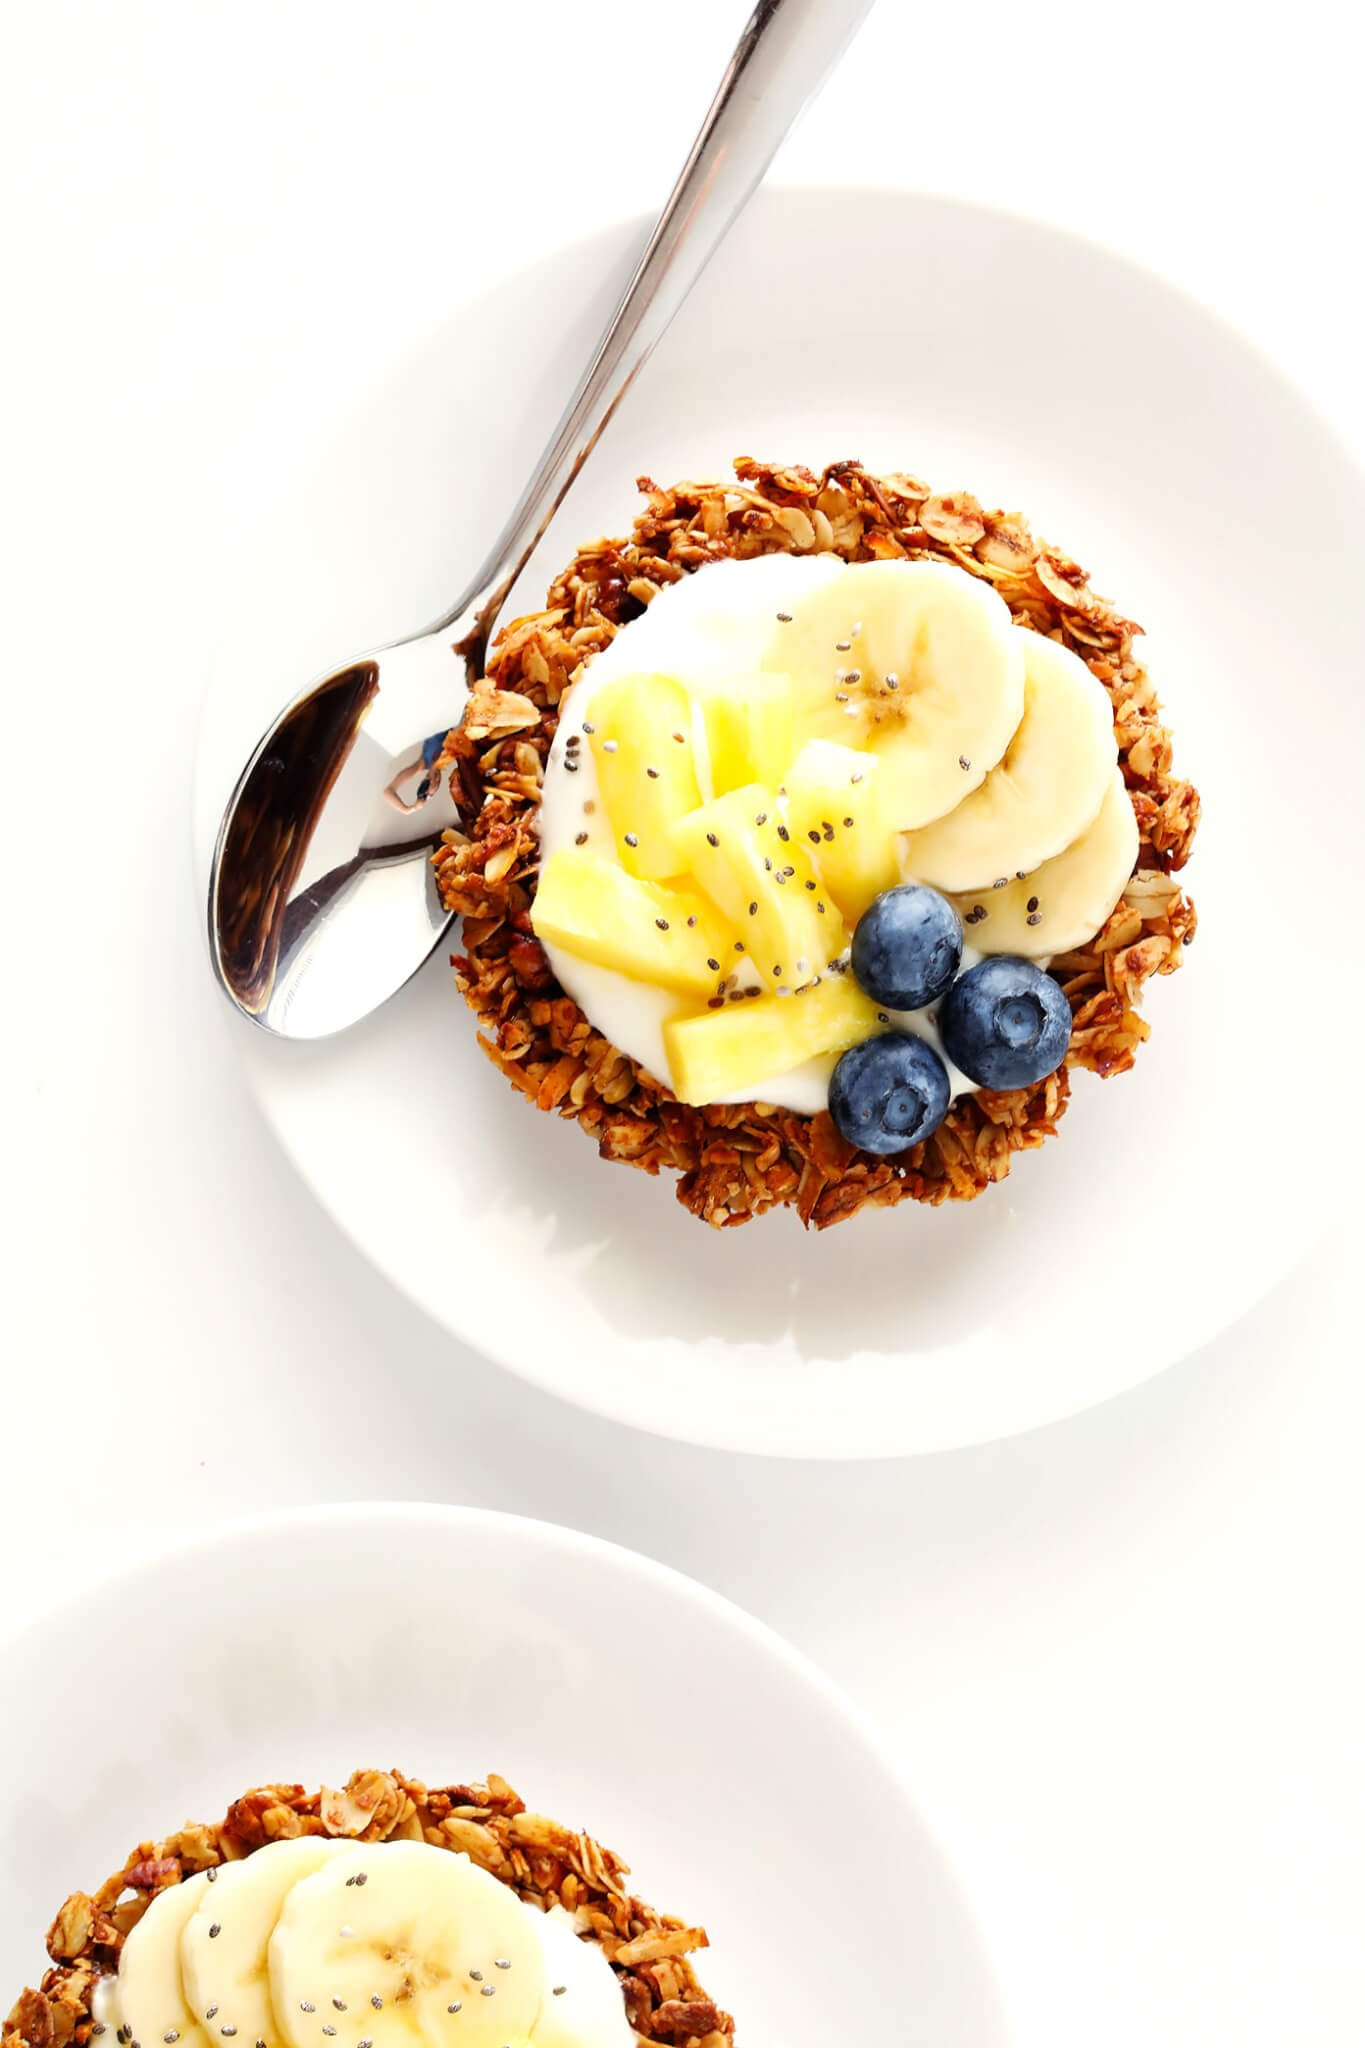 These Mini Granola Tart Cups are a cute and delicious way to serve your granola! Fill them with yogurt and fruit for breakfast, no-bake fillings for dessert, or whatever sounds good. | gimmesomeoven.com (Gluten-Free / Vegetarian)